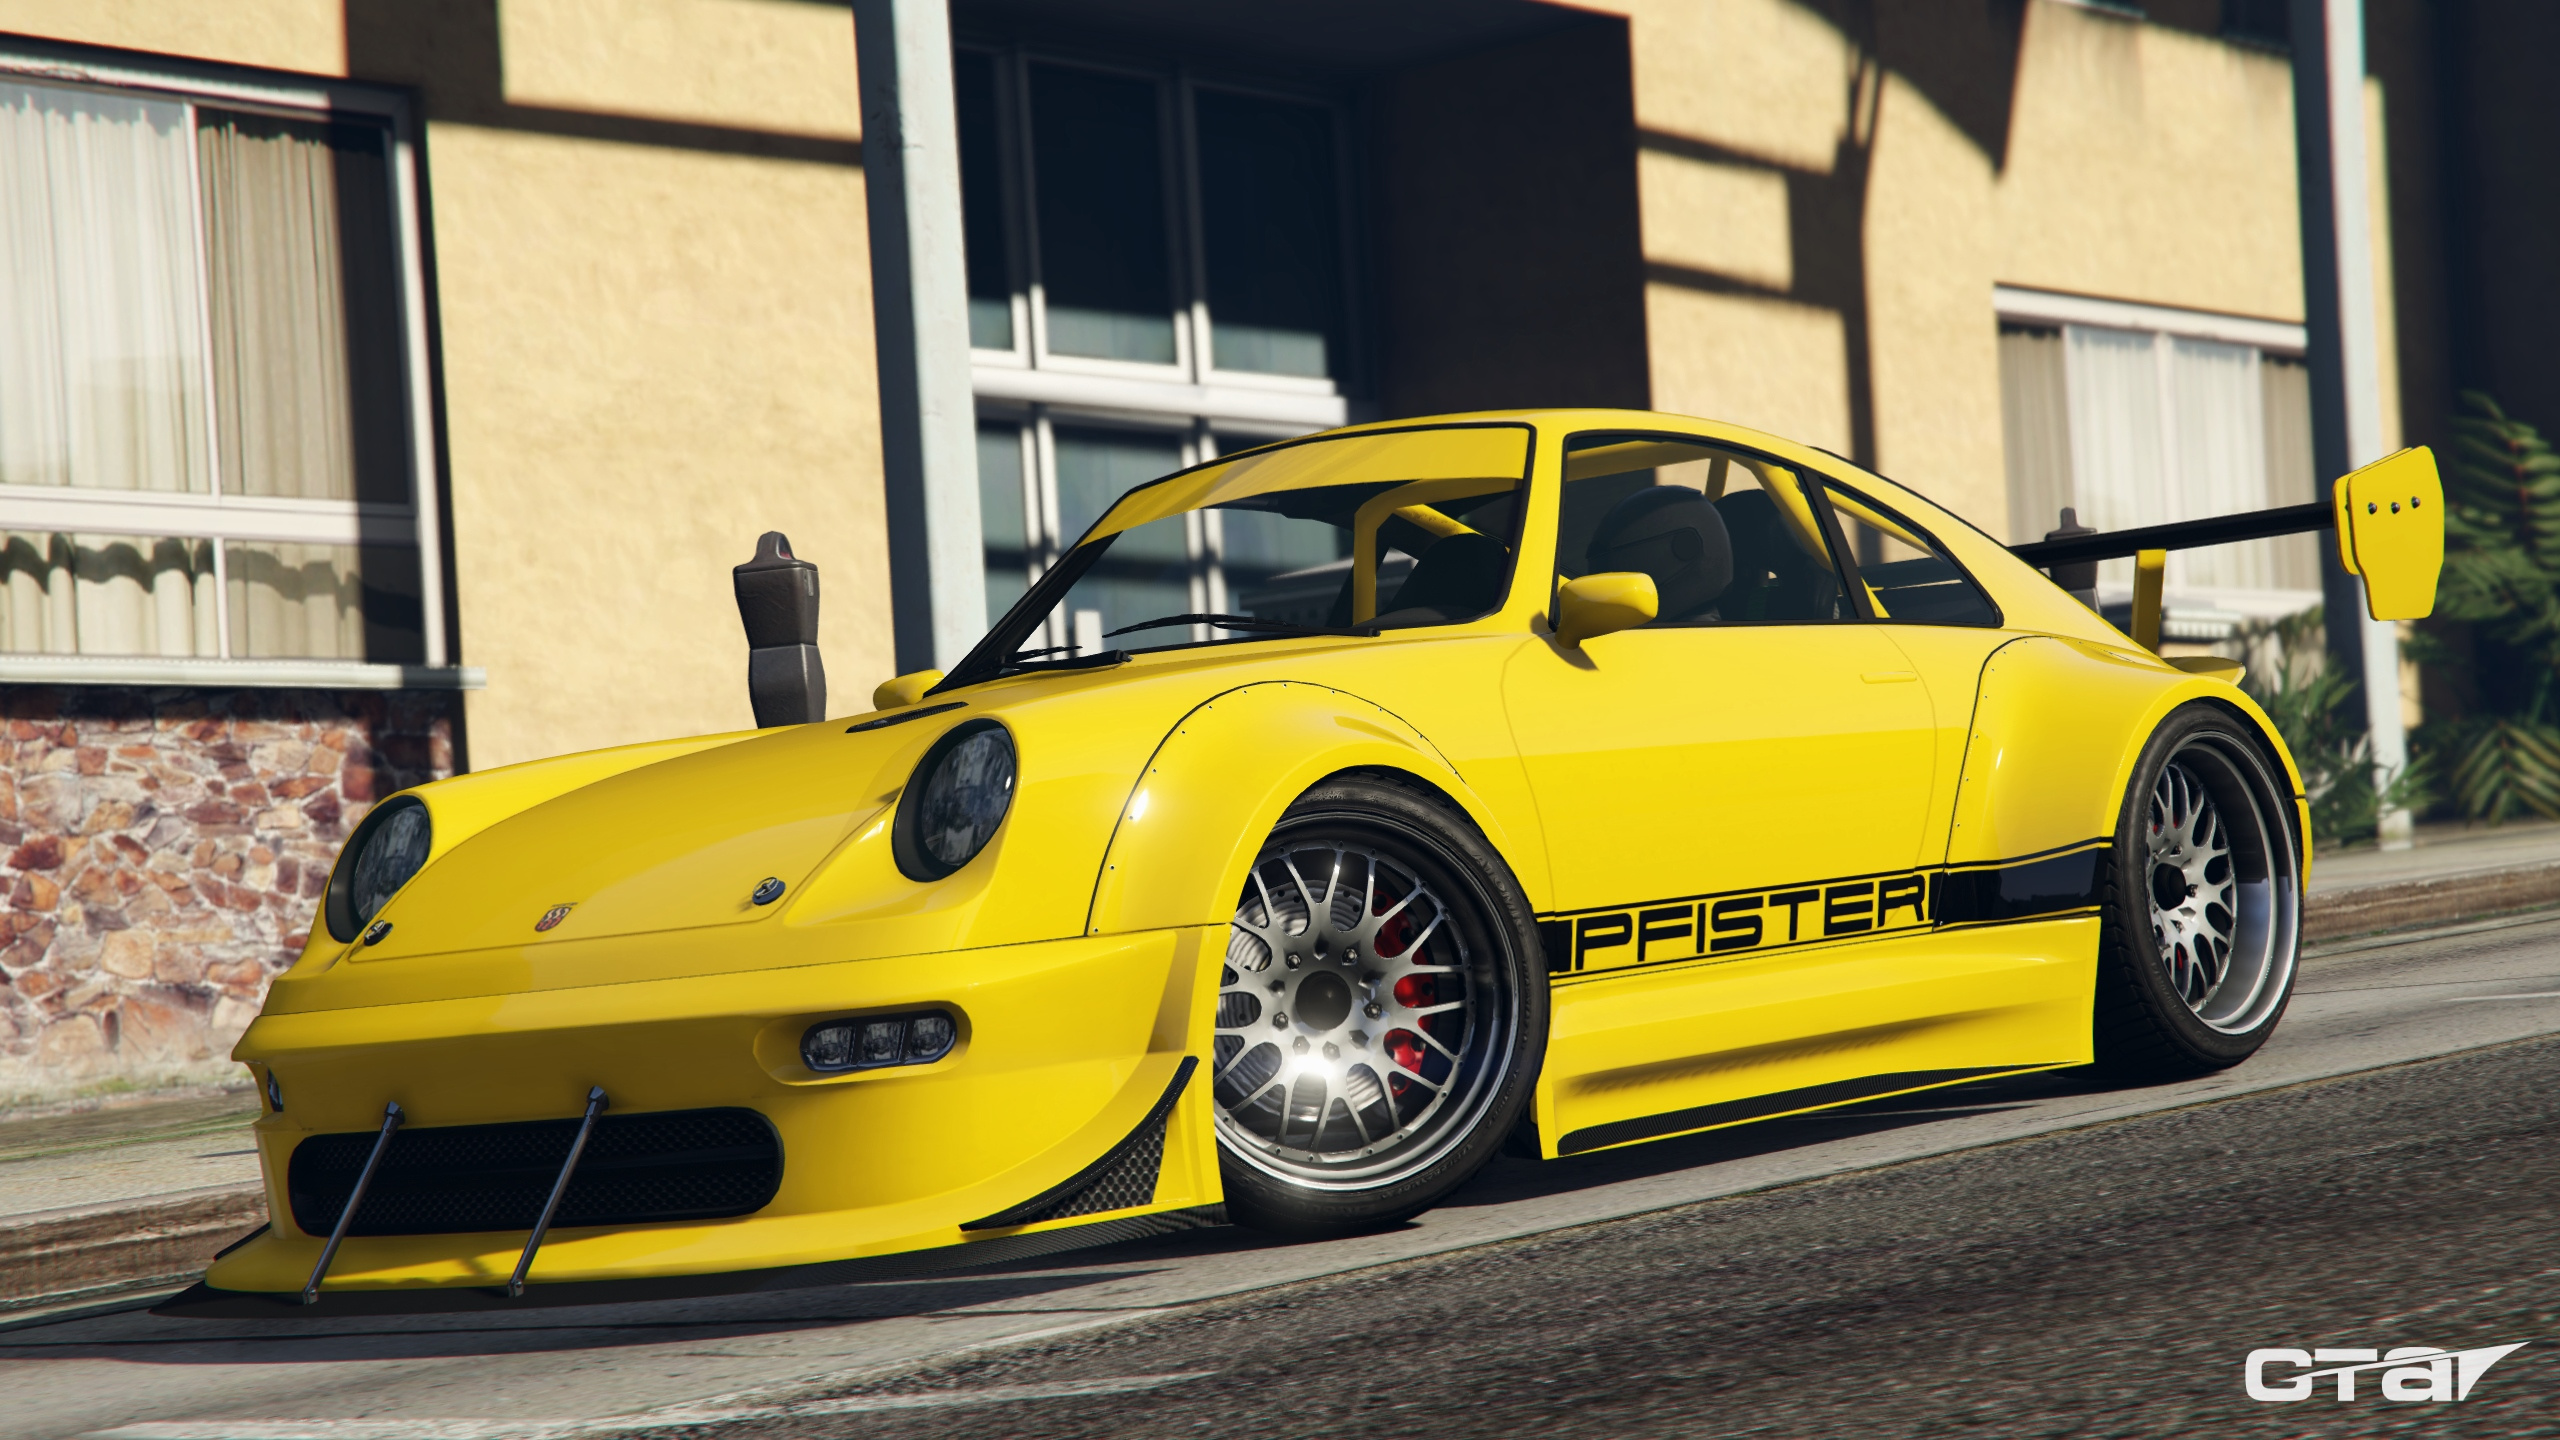 Best car paint jobs gta 5 for Best car paint